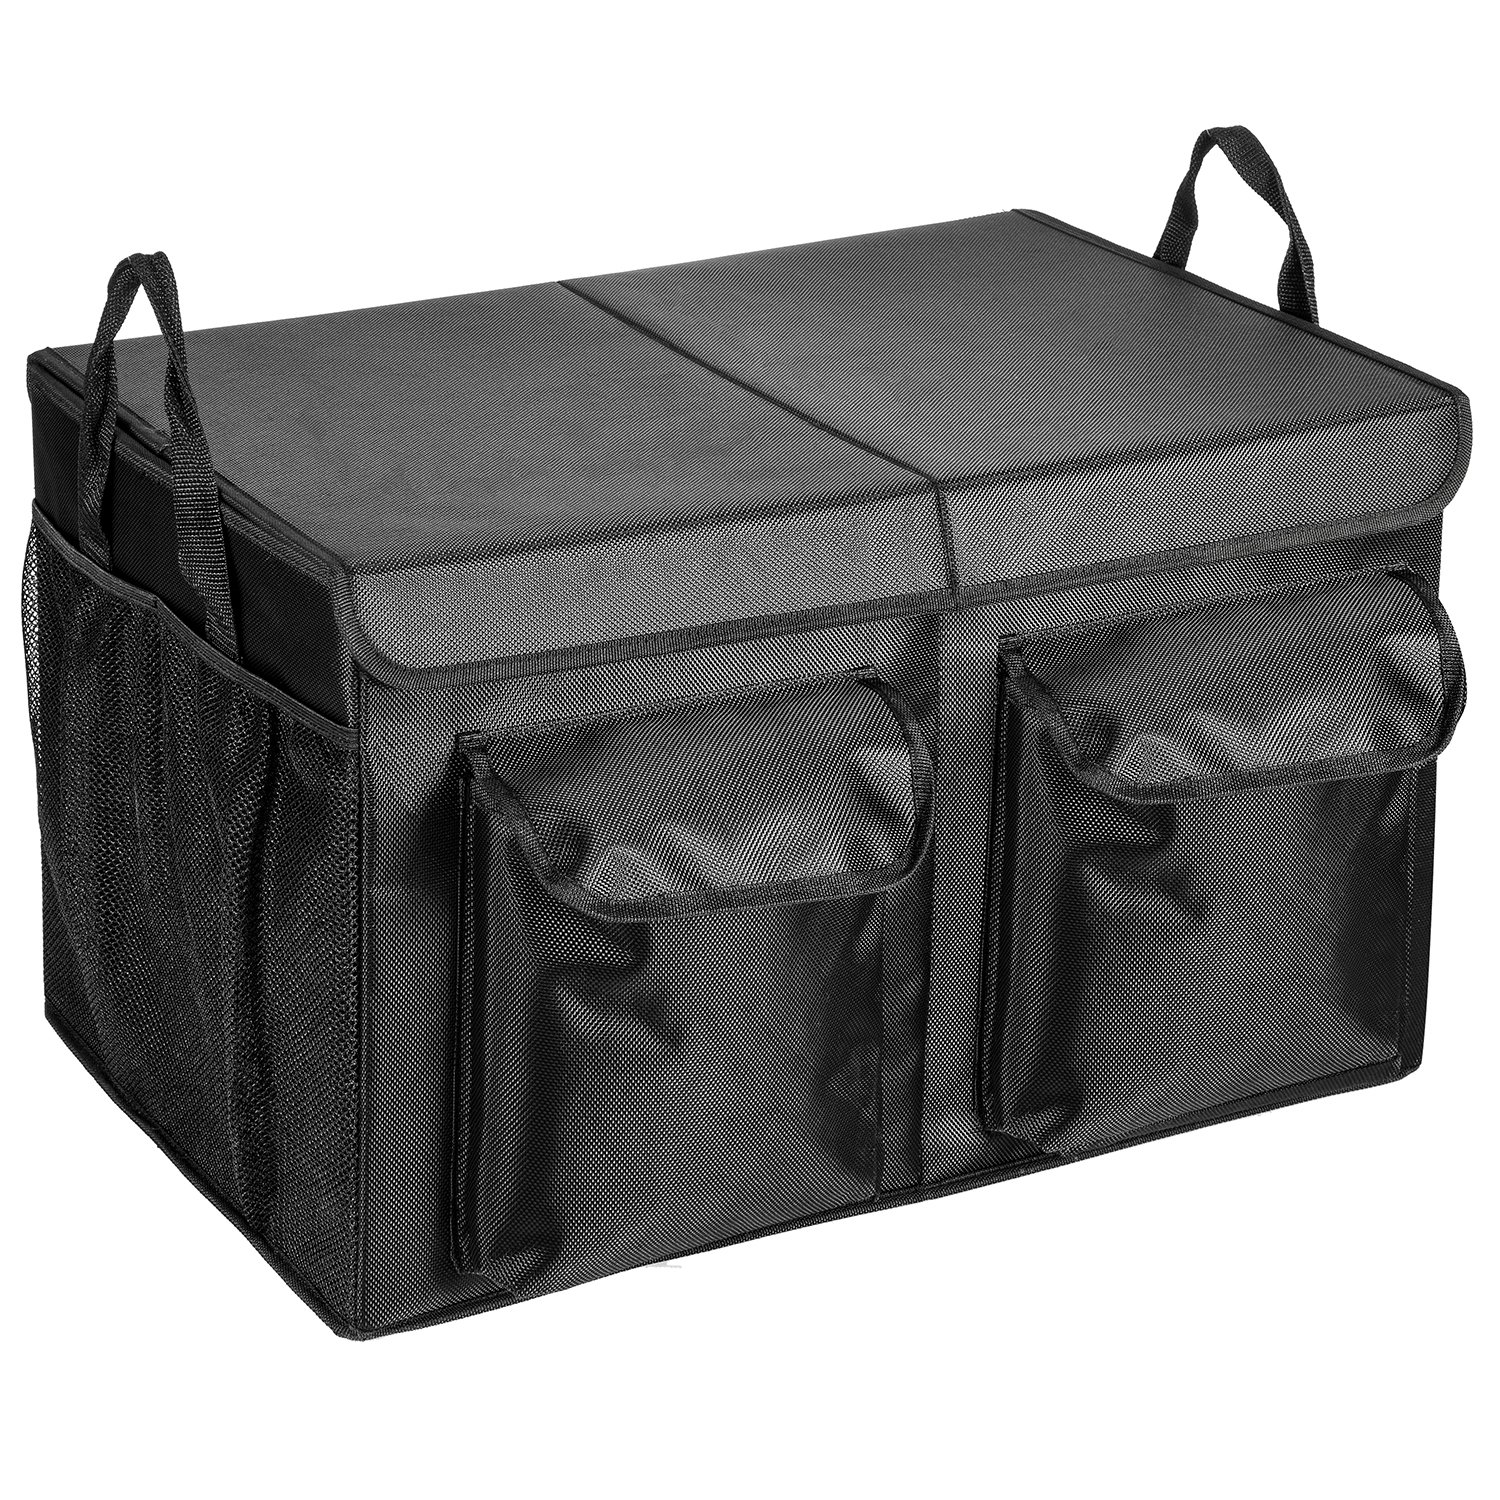 MaidMAX Trunk Organizer for SUV, 2 Compartments with a Lid, Foldable, Black 903057